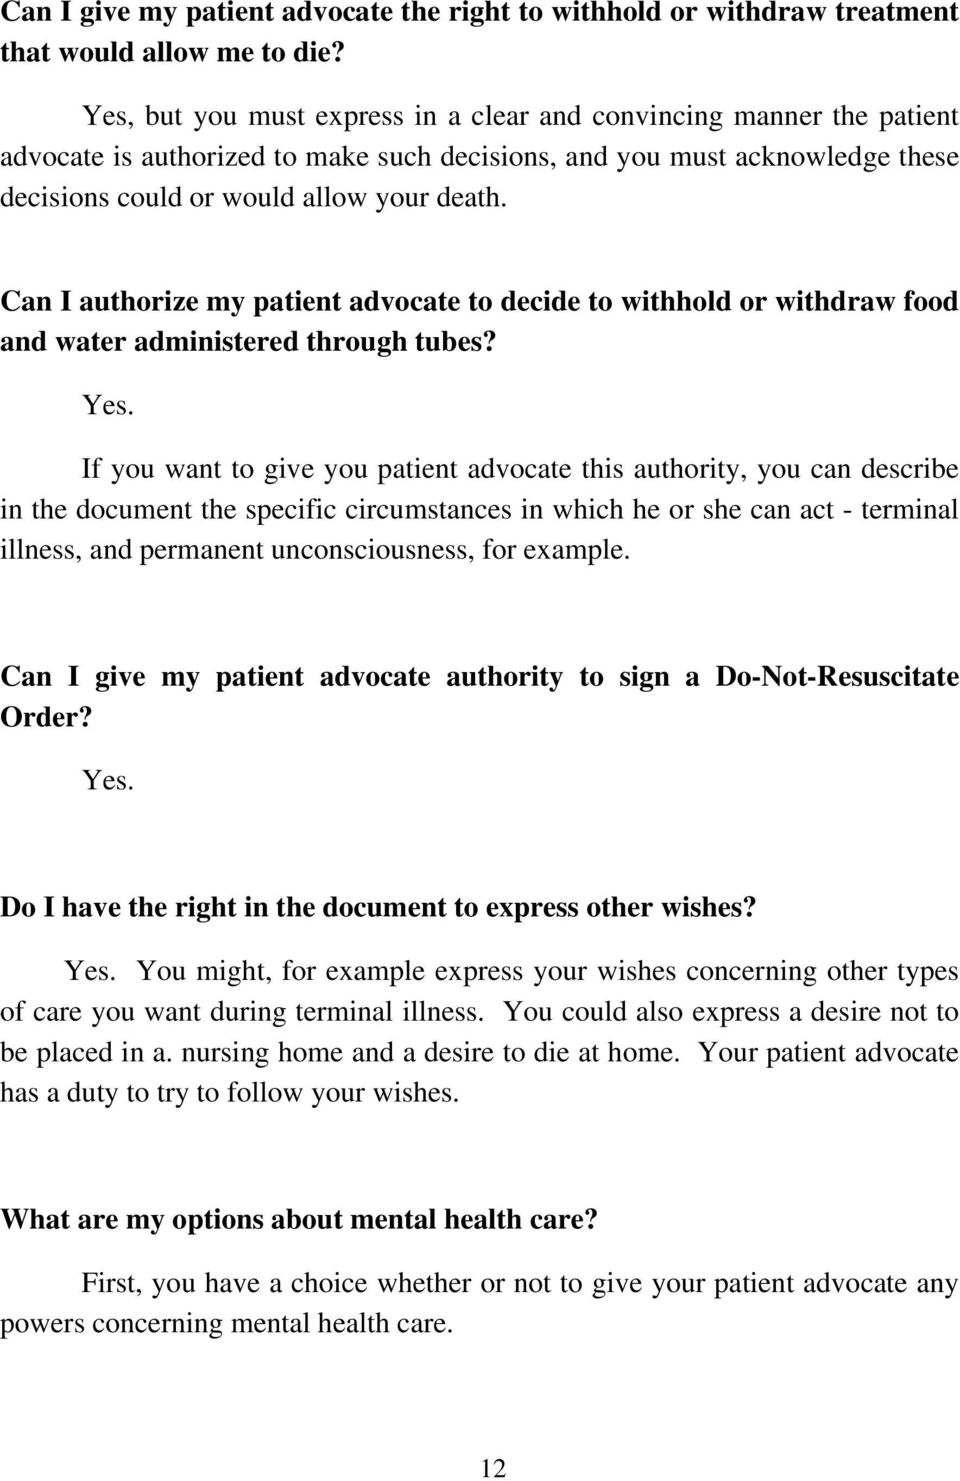 Can I authorize my patient advocate to decide to withhold or withdraw food and water administered through tubes? Yes.